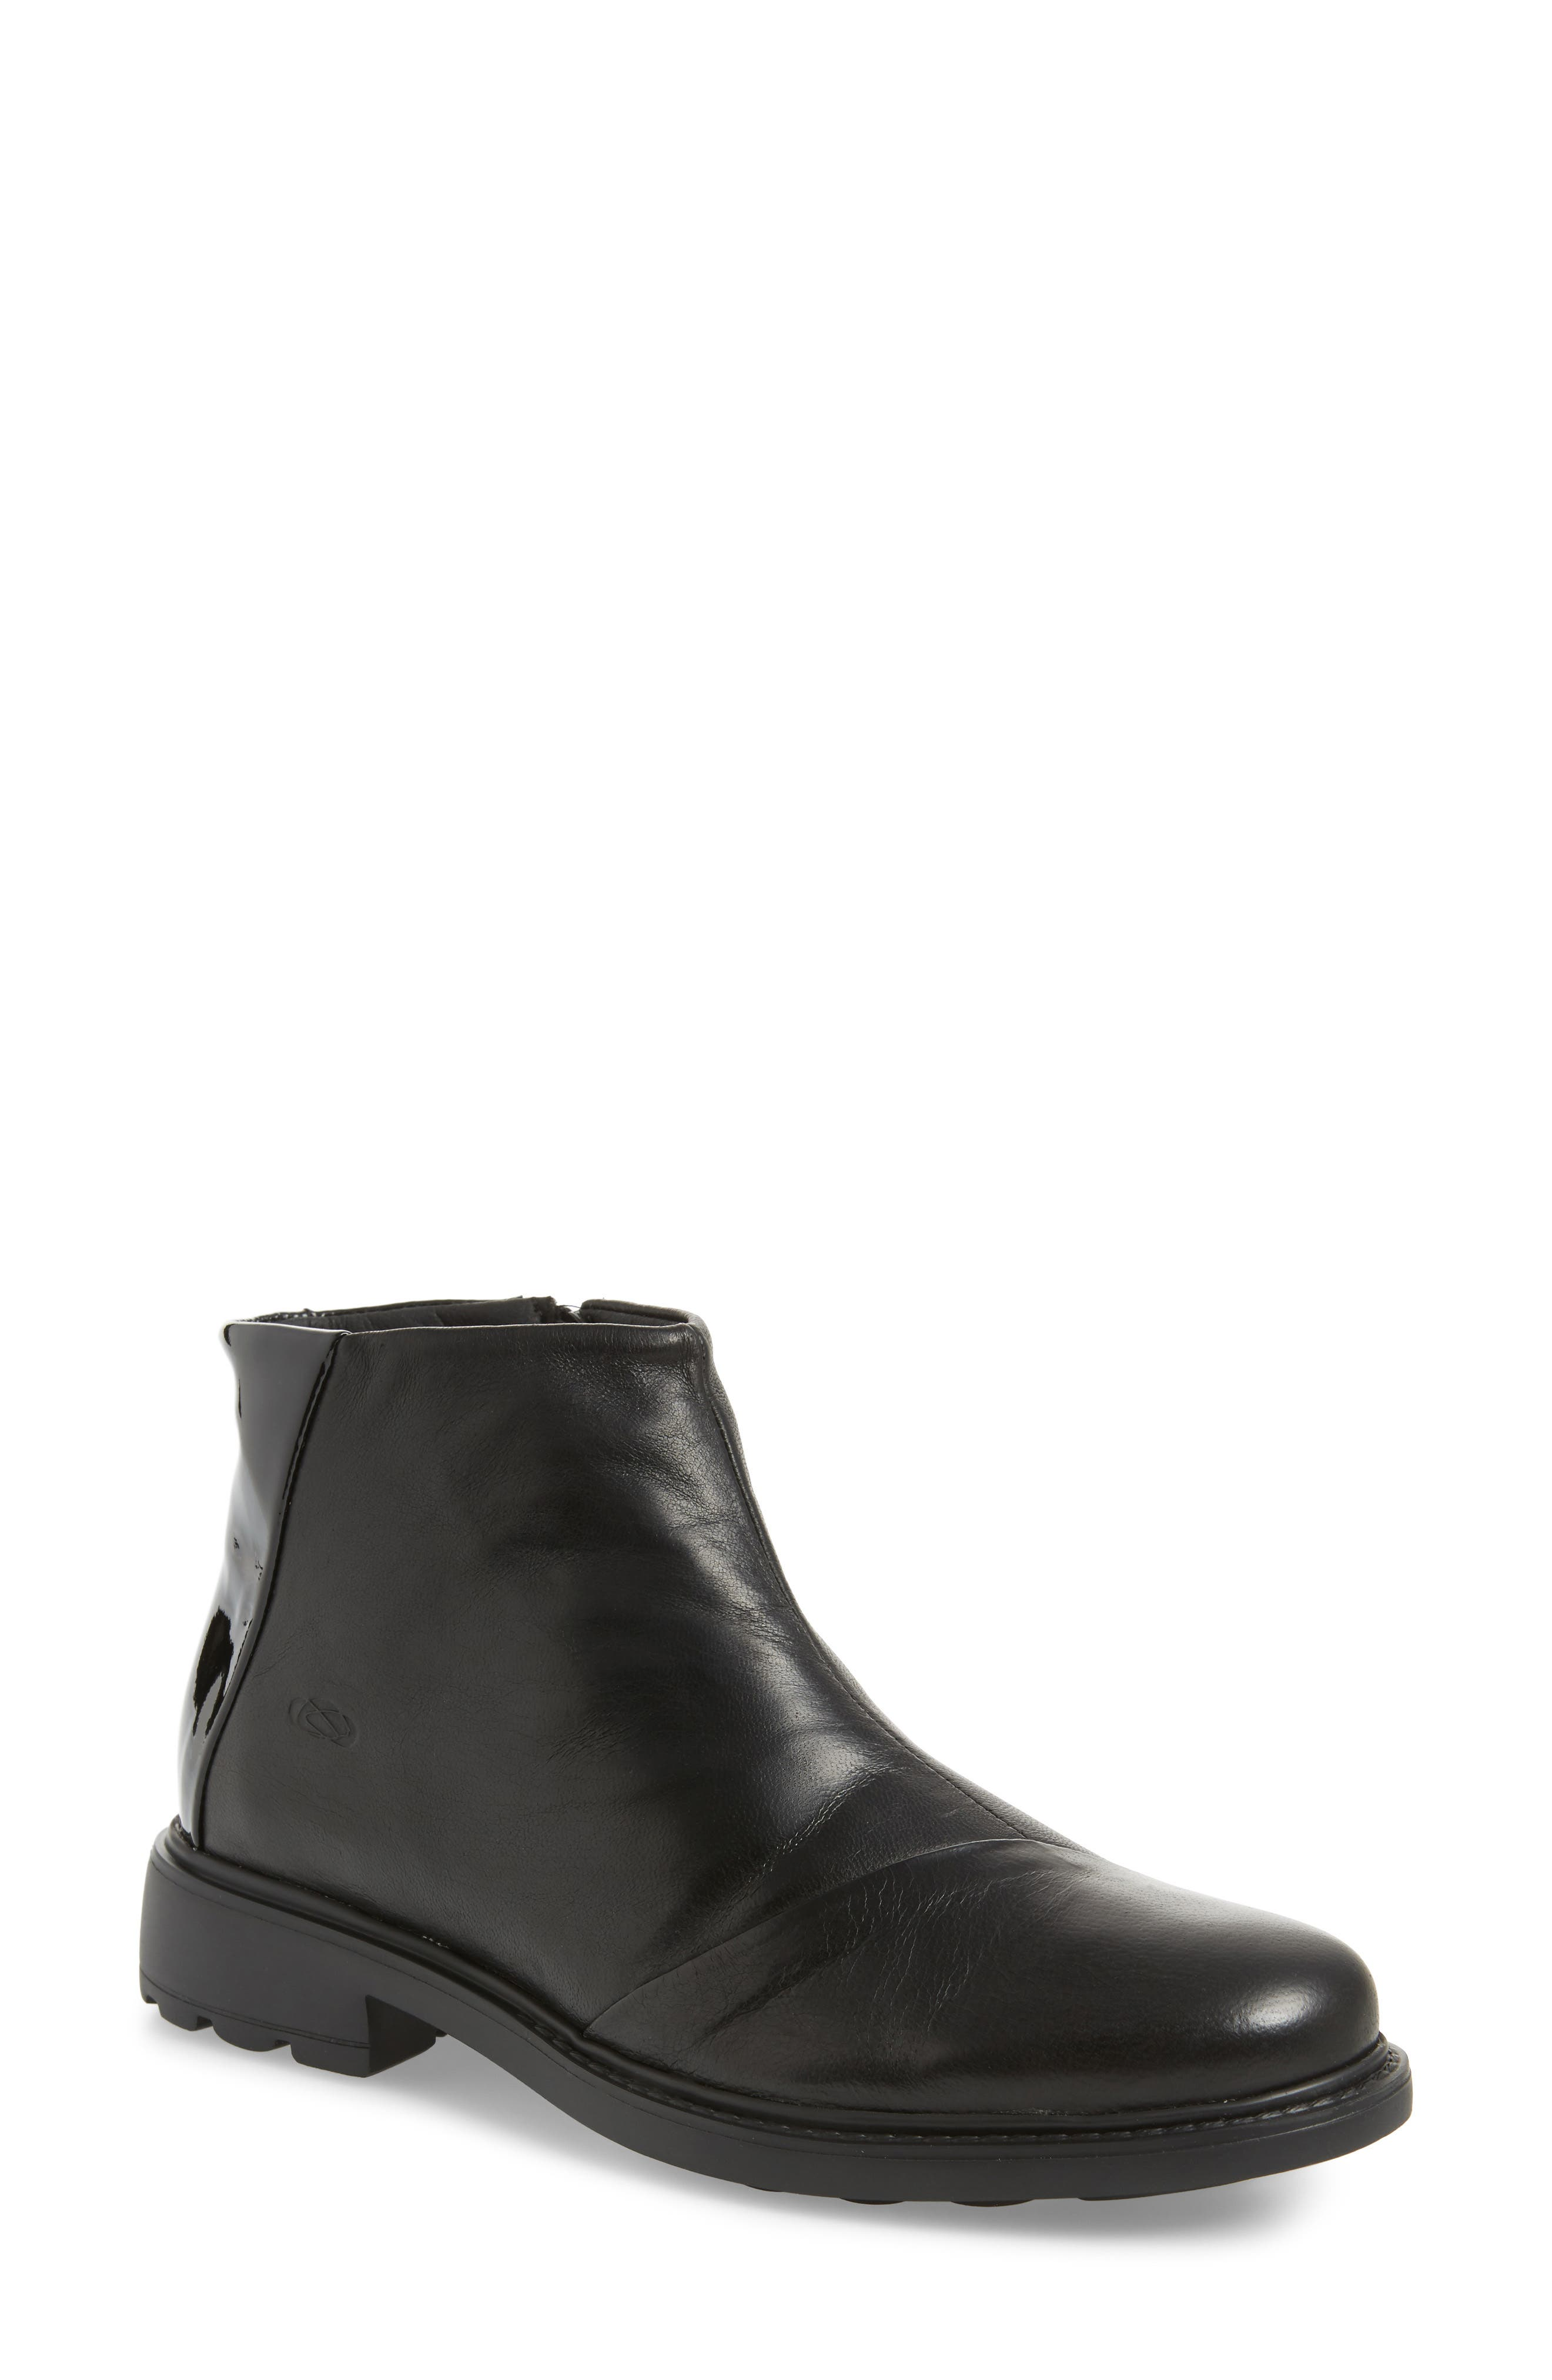 Penny Bootie,                         Main,                         color, Black Leather